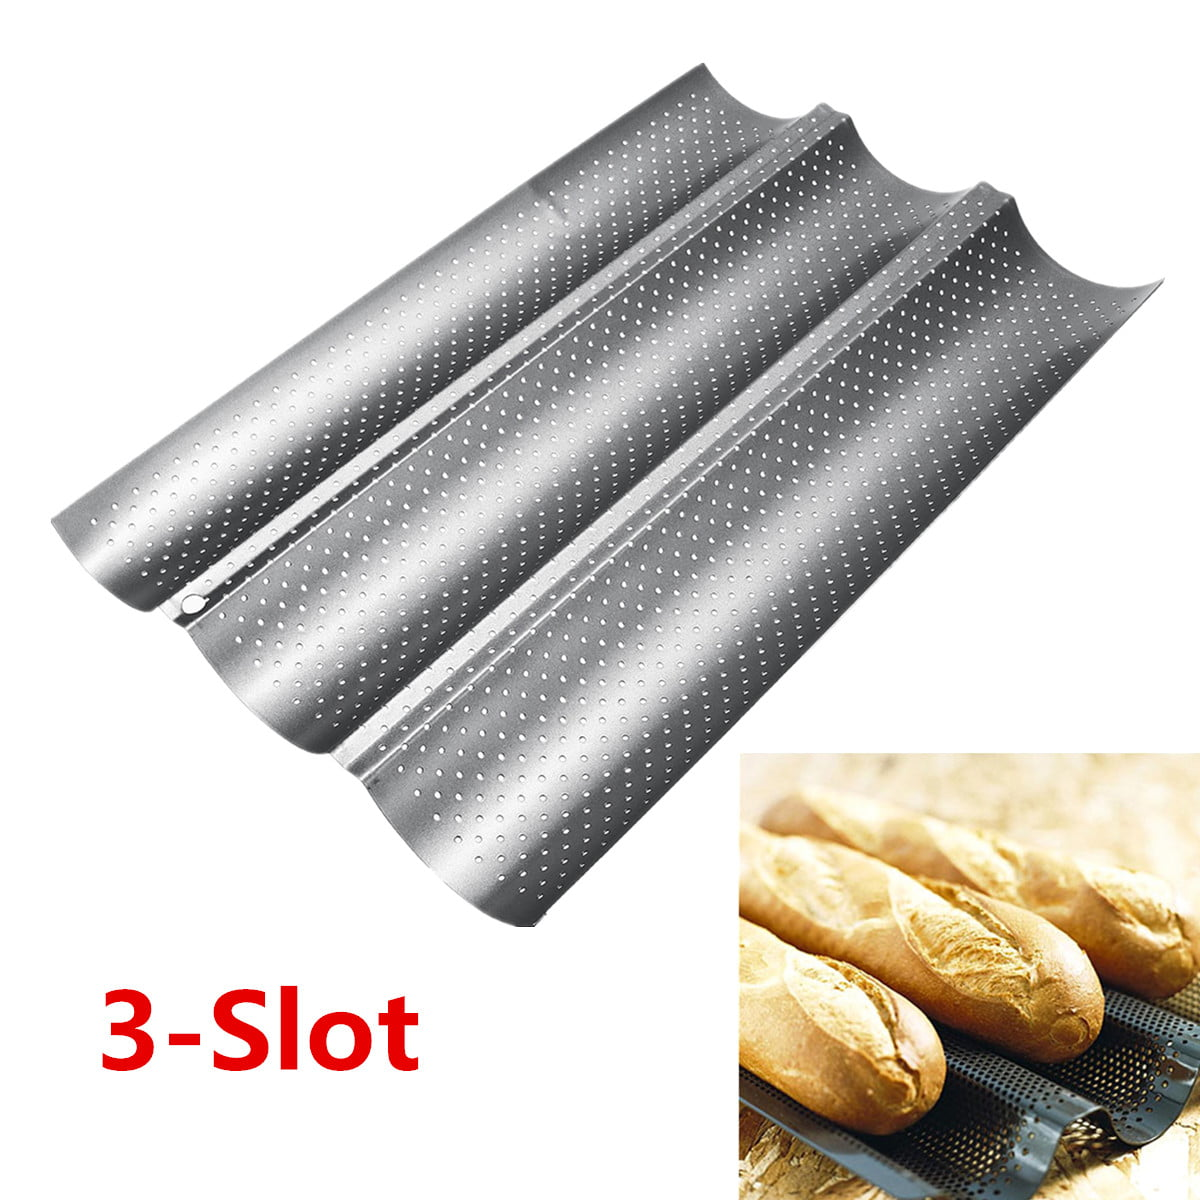 Nonstick Baguette Baking Tray Wave Perforated Loaf Bread Pan Mould Bakeware Rack